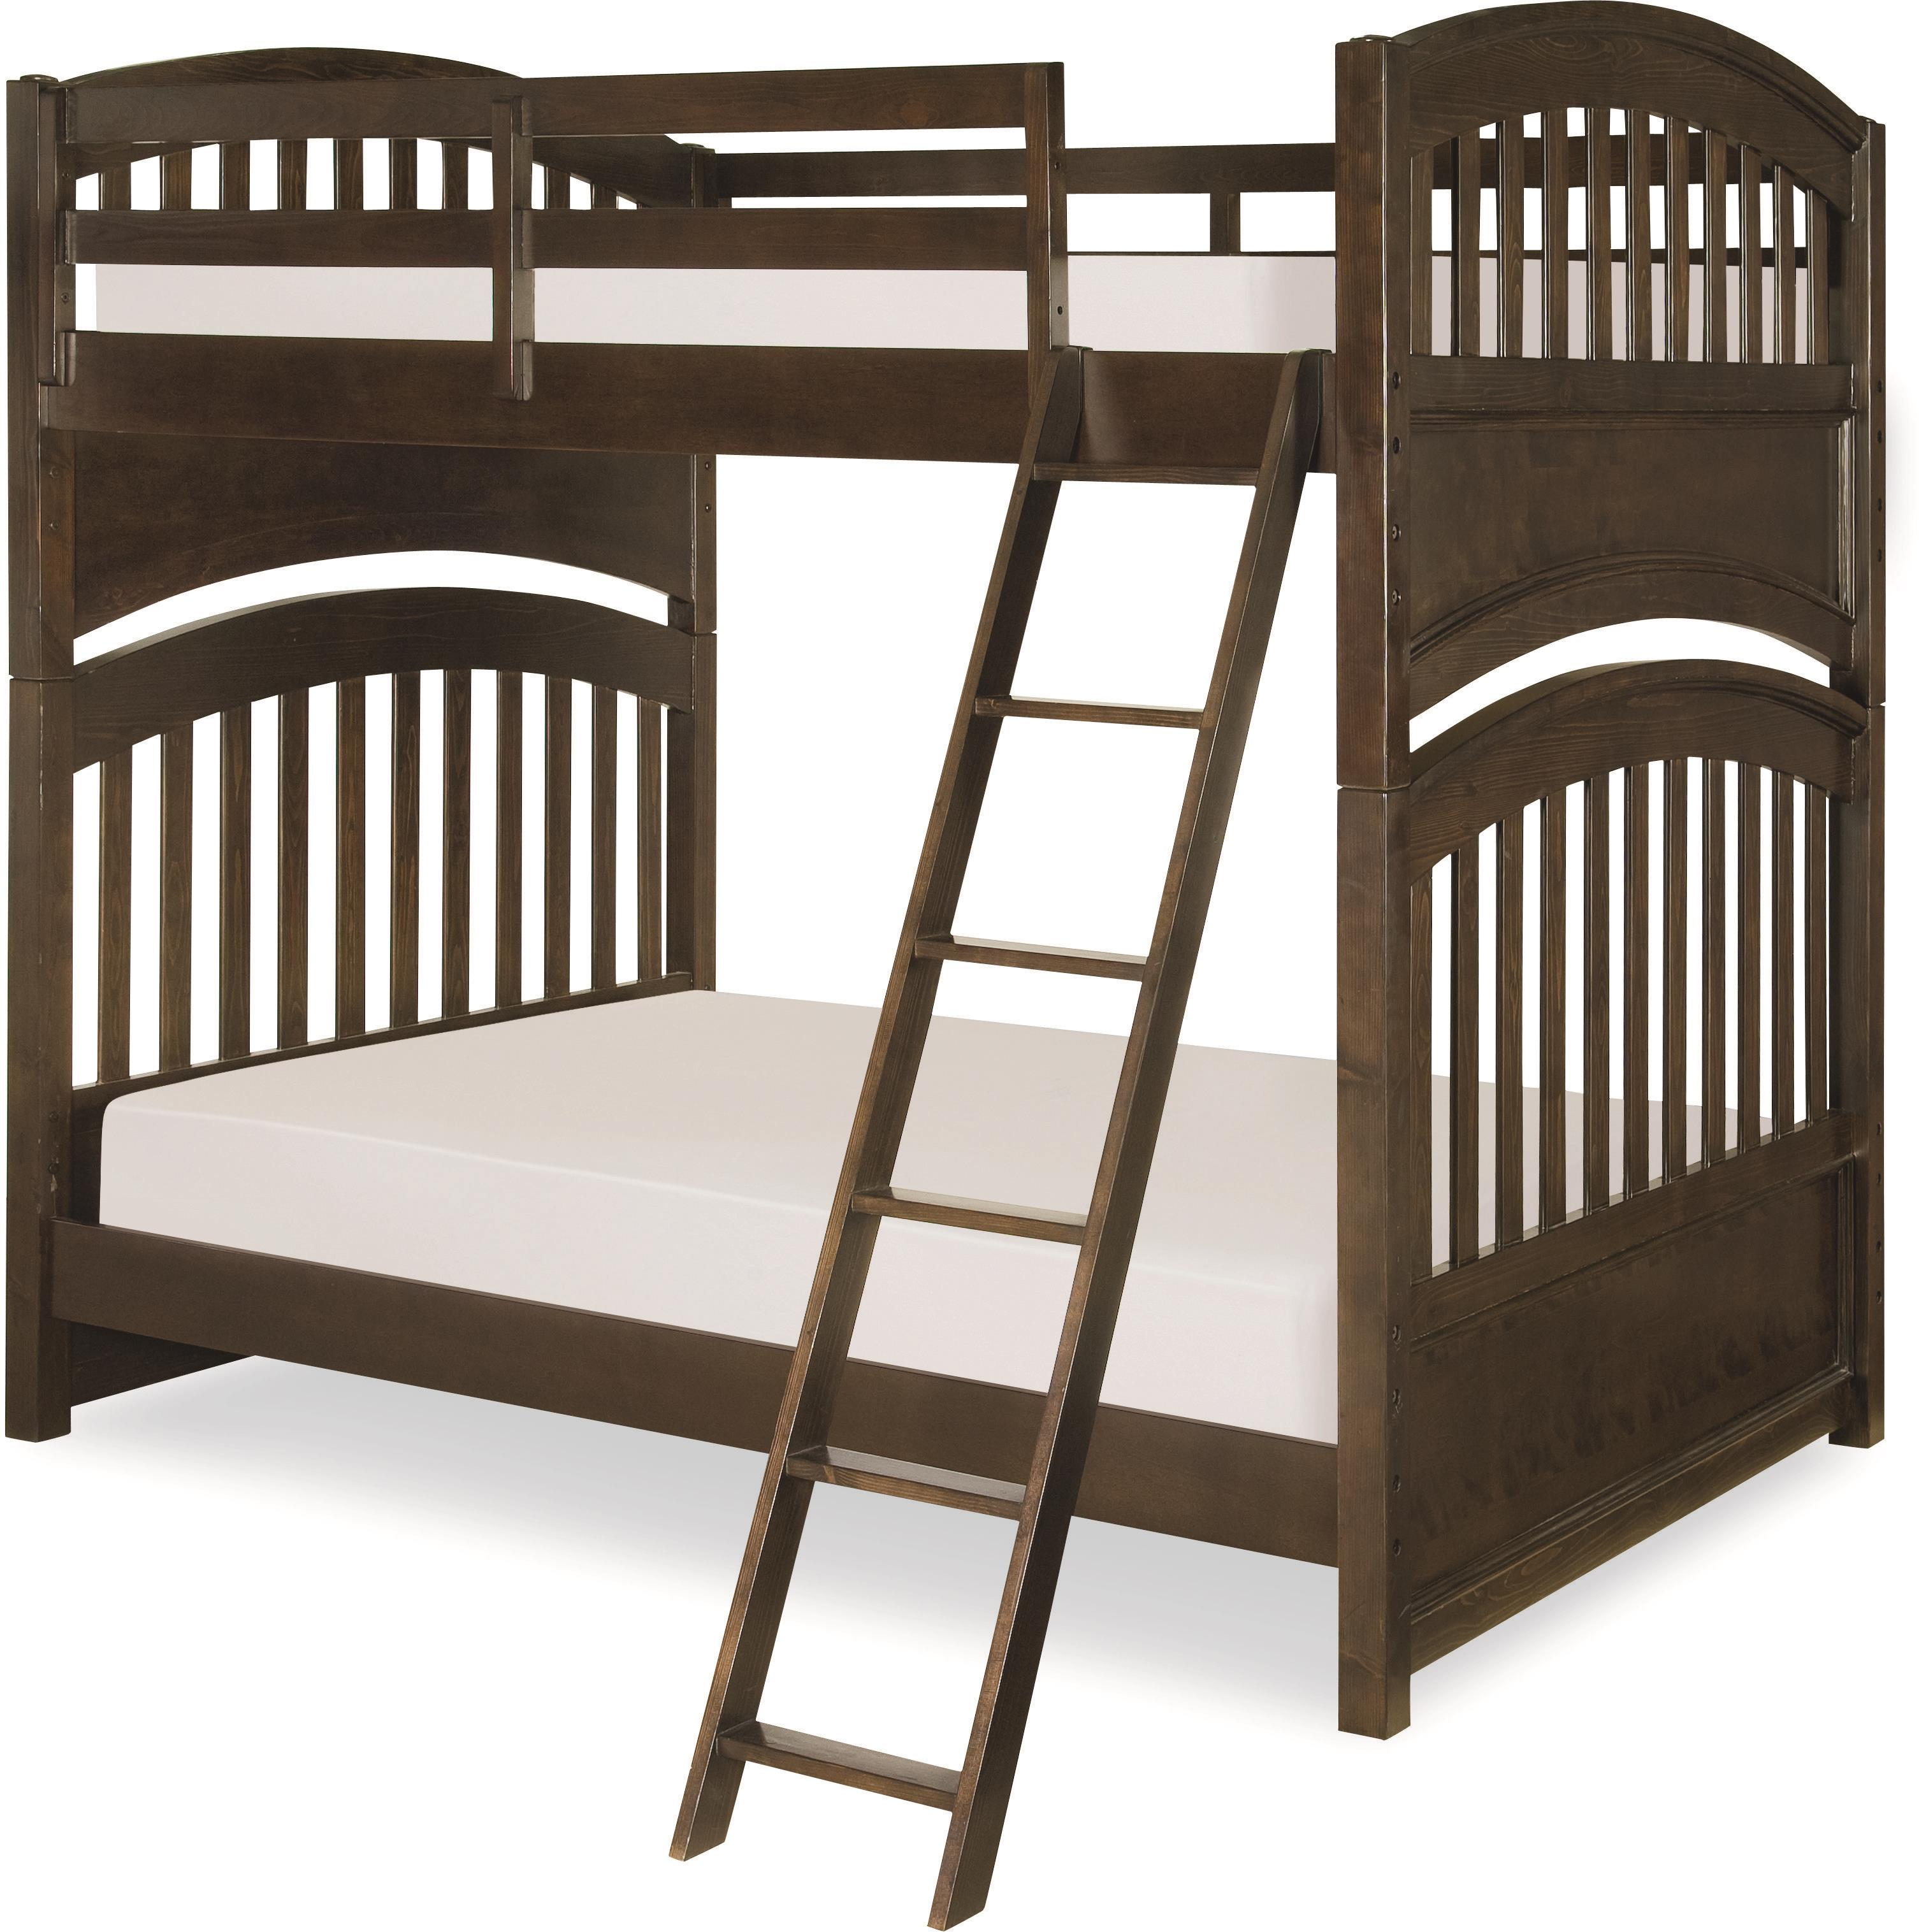 Academy Full over Full Bunk Bed by Legacy Classic Kids at Pilgrim Furniture City